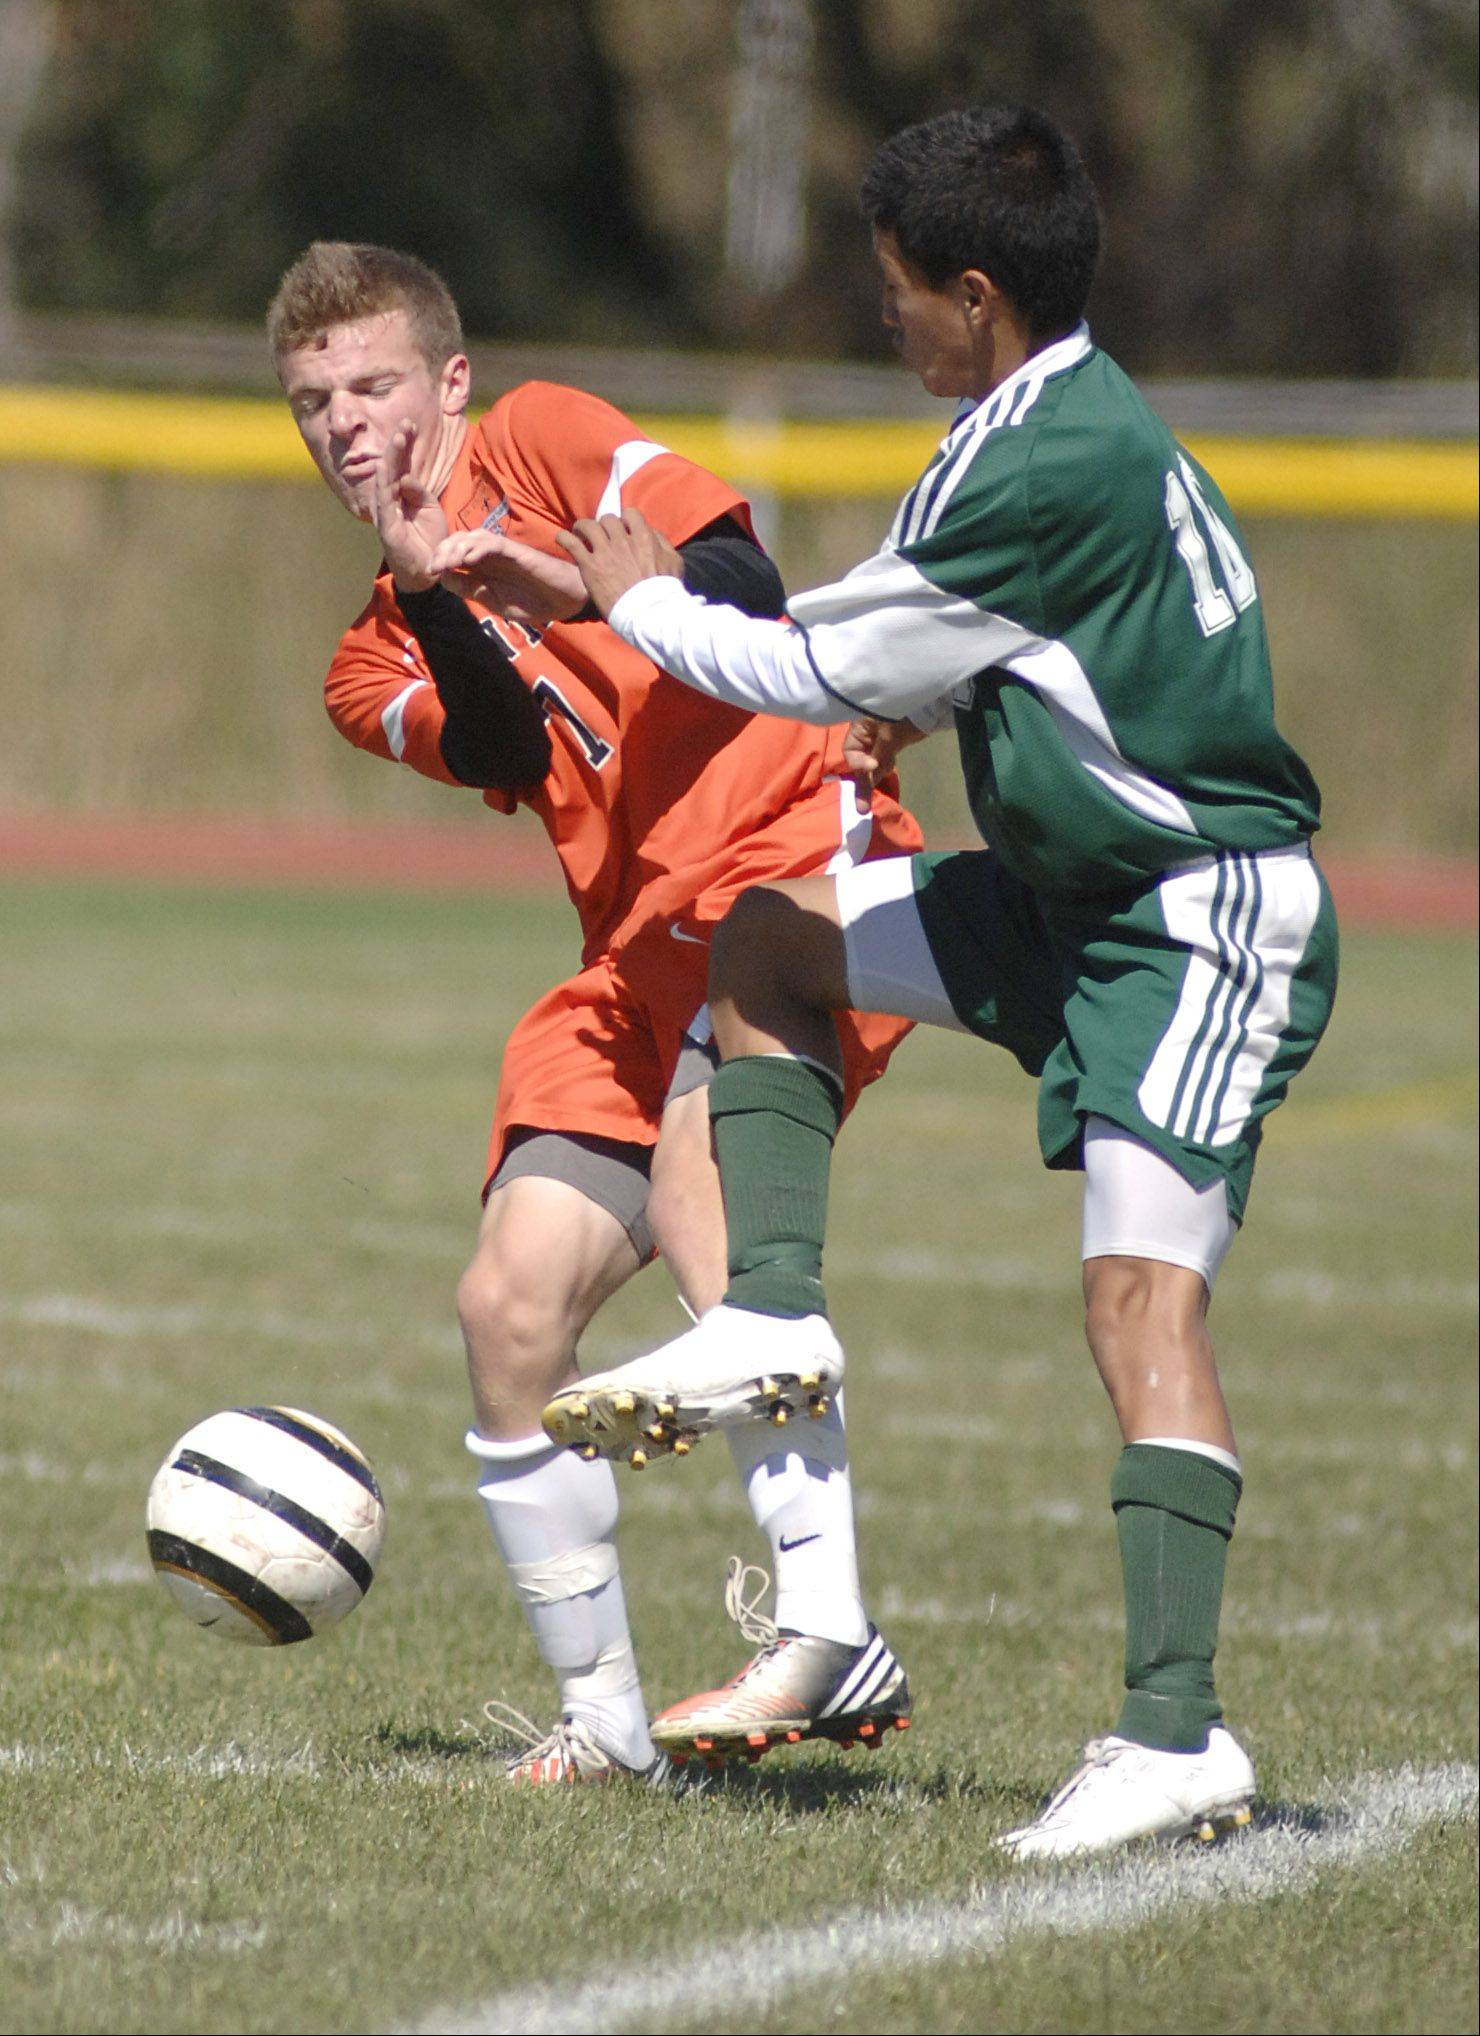 St. Charles East's Jacob Sterling winces as Plainfield Central's Miguel Duran kicks the ball at close range in the first half on Saturday, September 22.